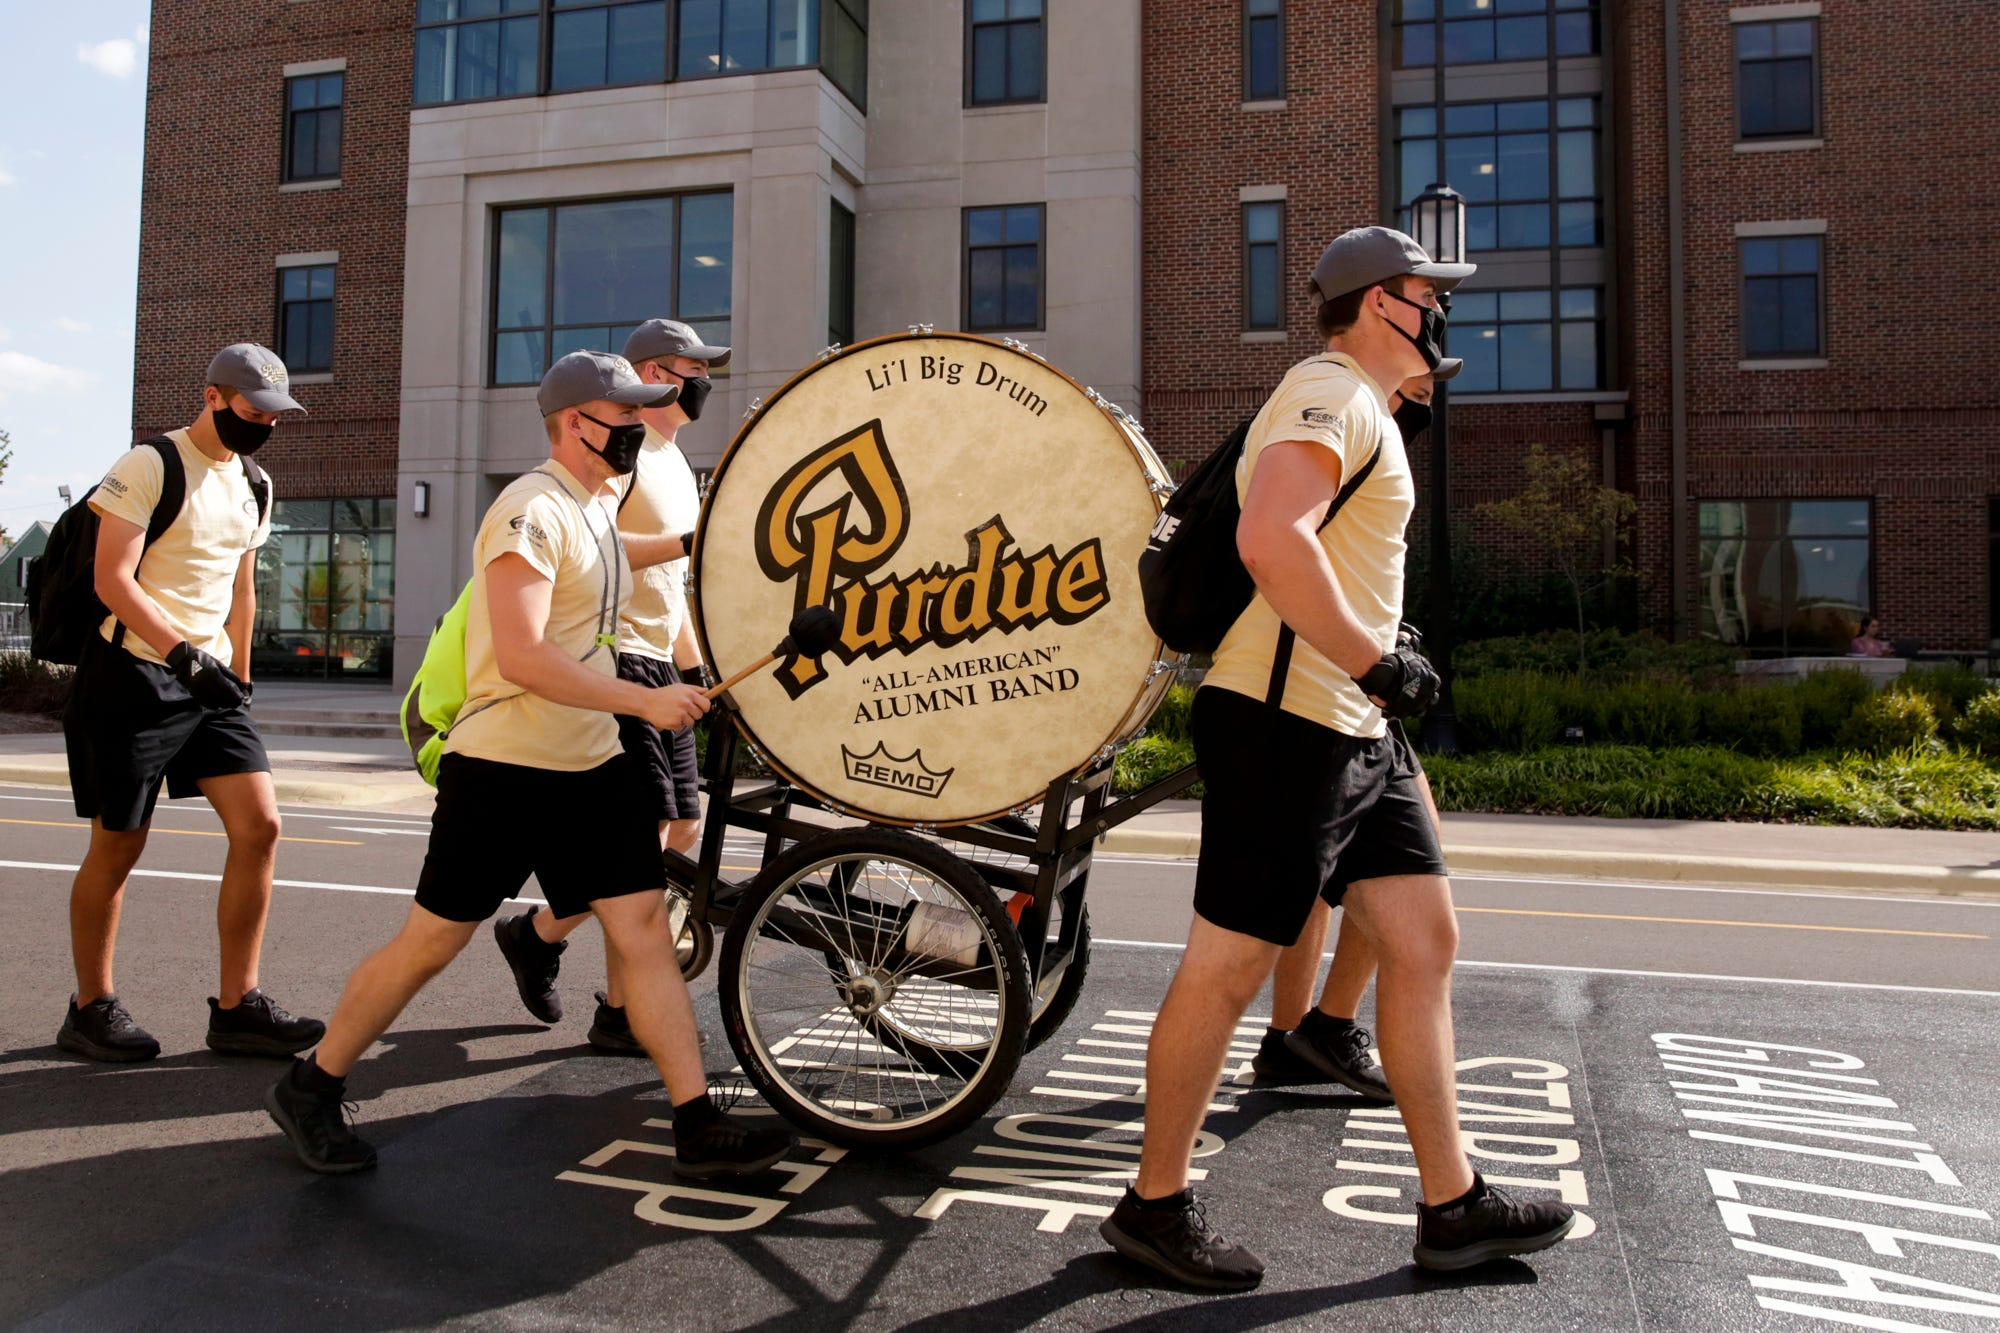 The Pudue University marching band's Li'l Big Drum is wheeled through West Lafayette on Friday.